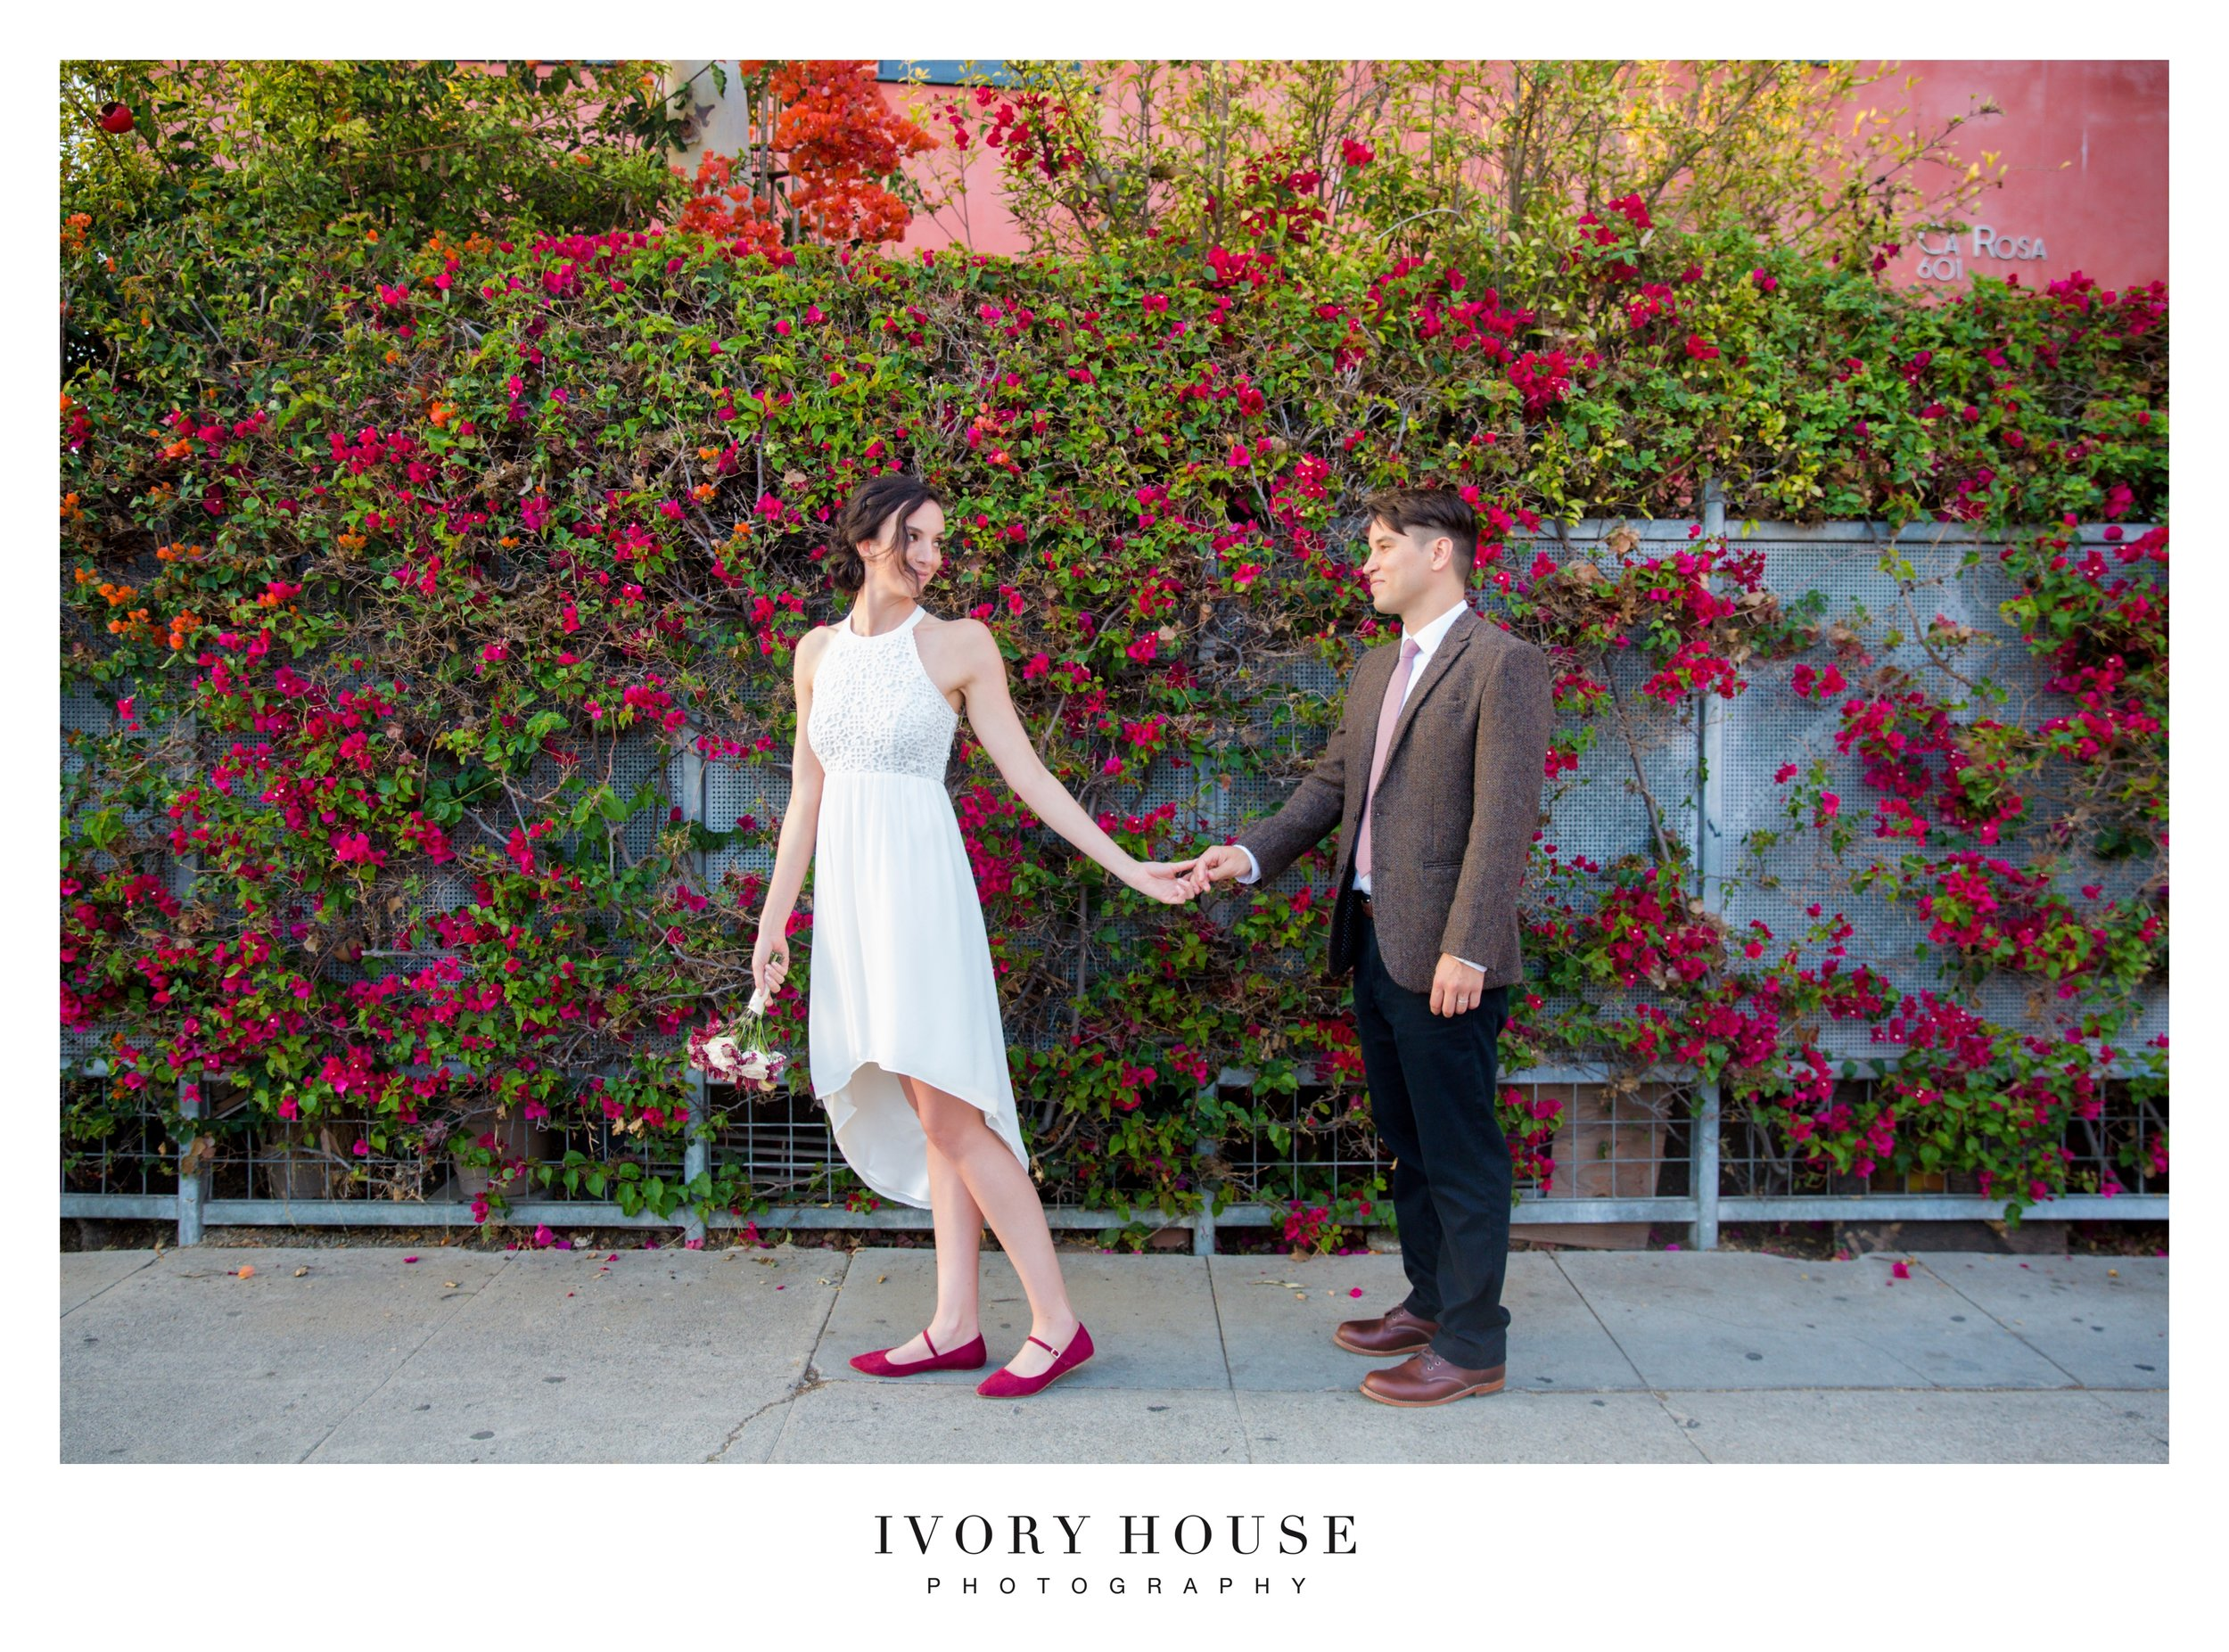 Travel Weddings Ivory House Photography.jpg